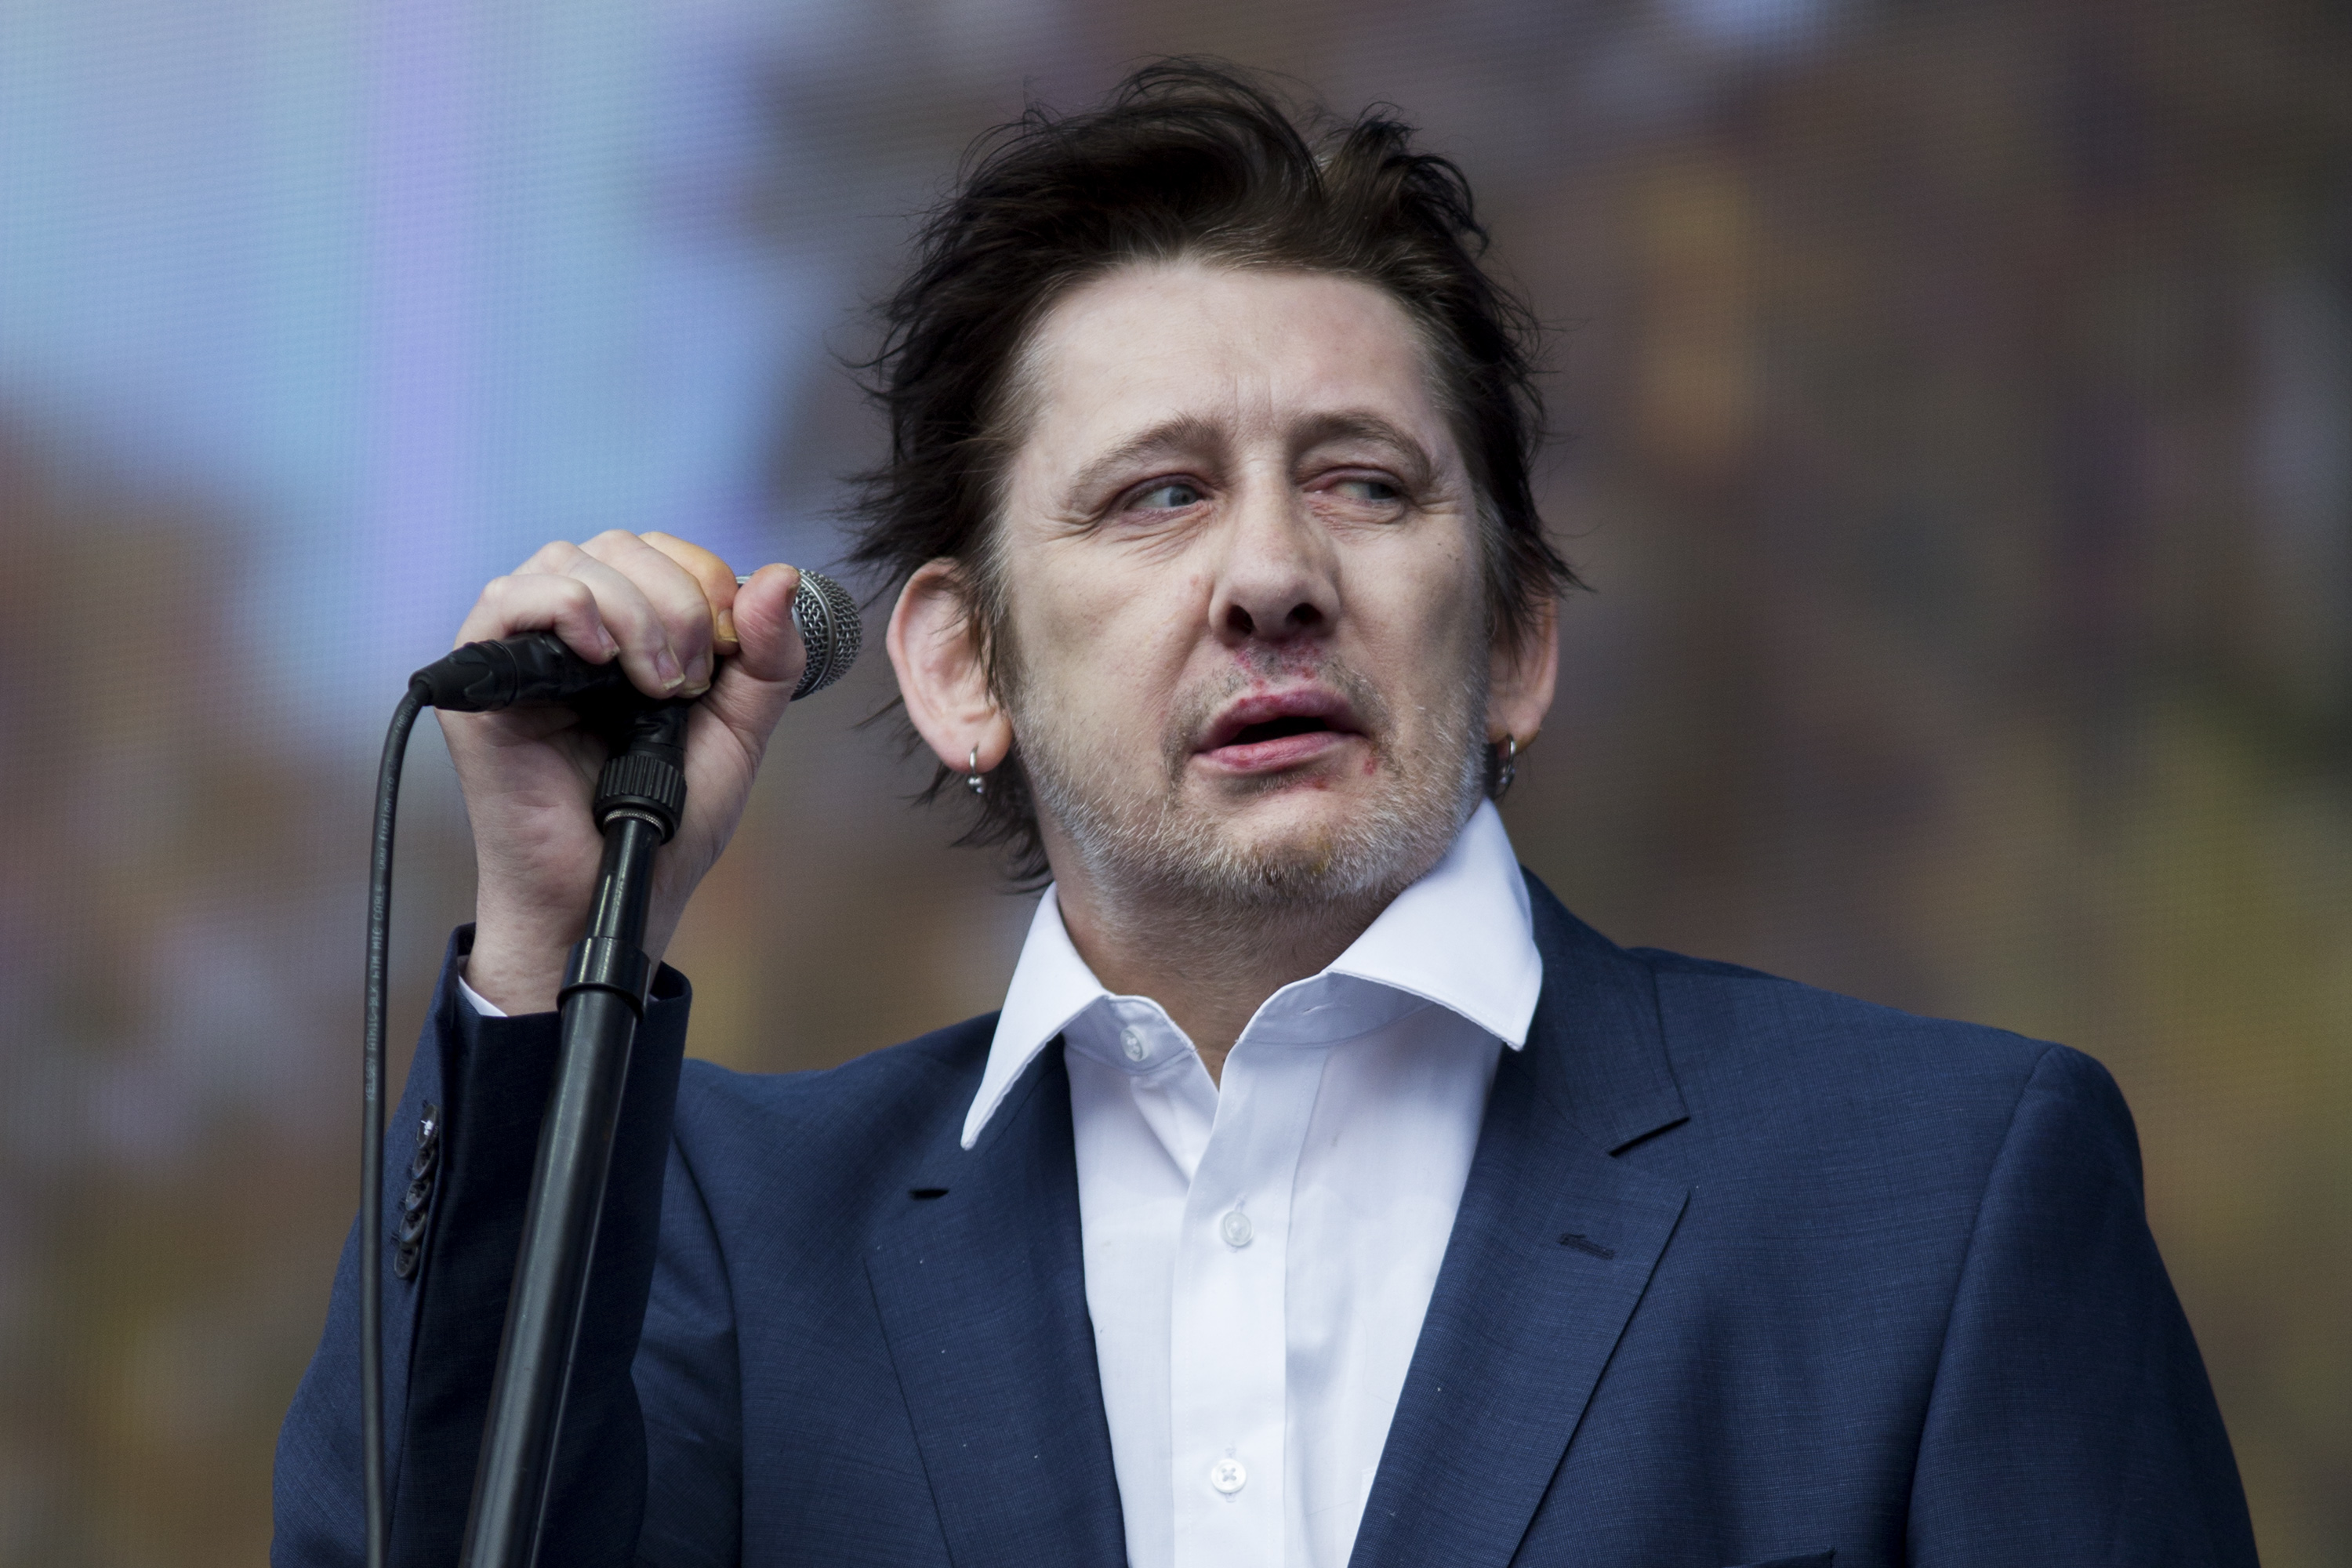 The pogues shane macgowan responds to calls to censor fairytale of new york